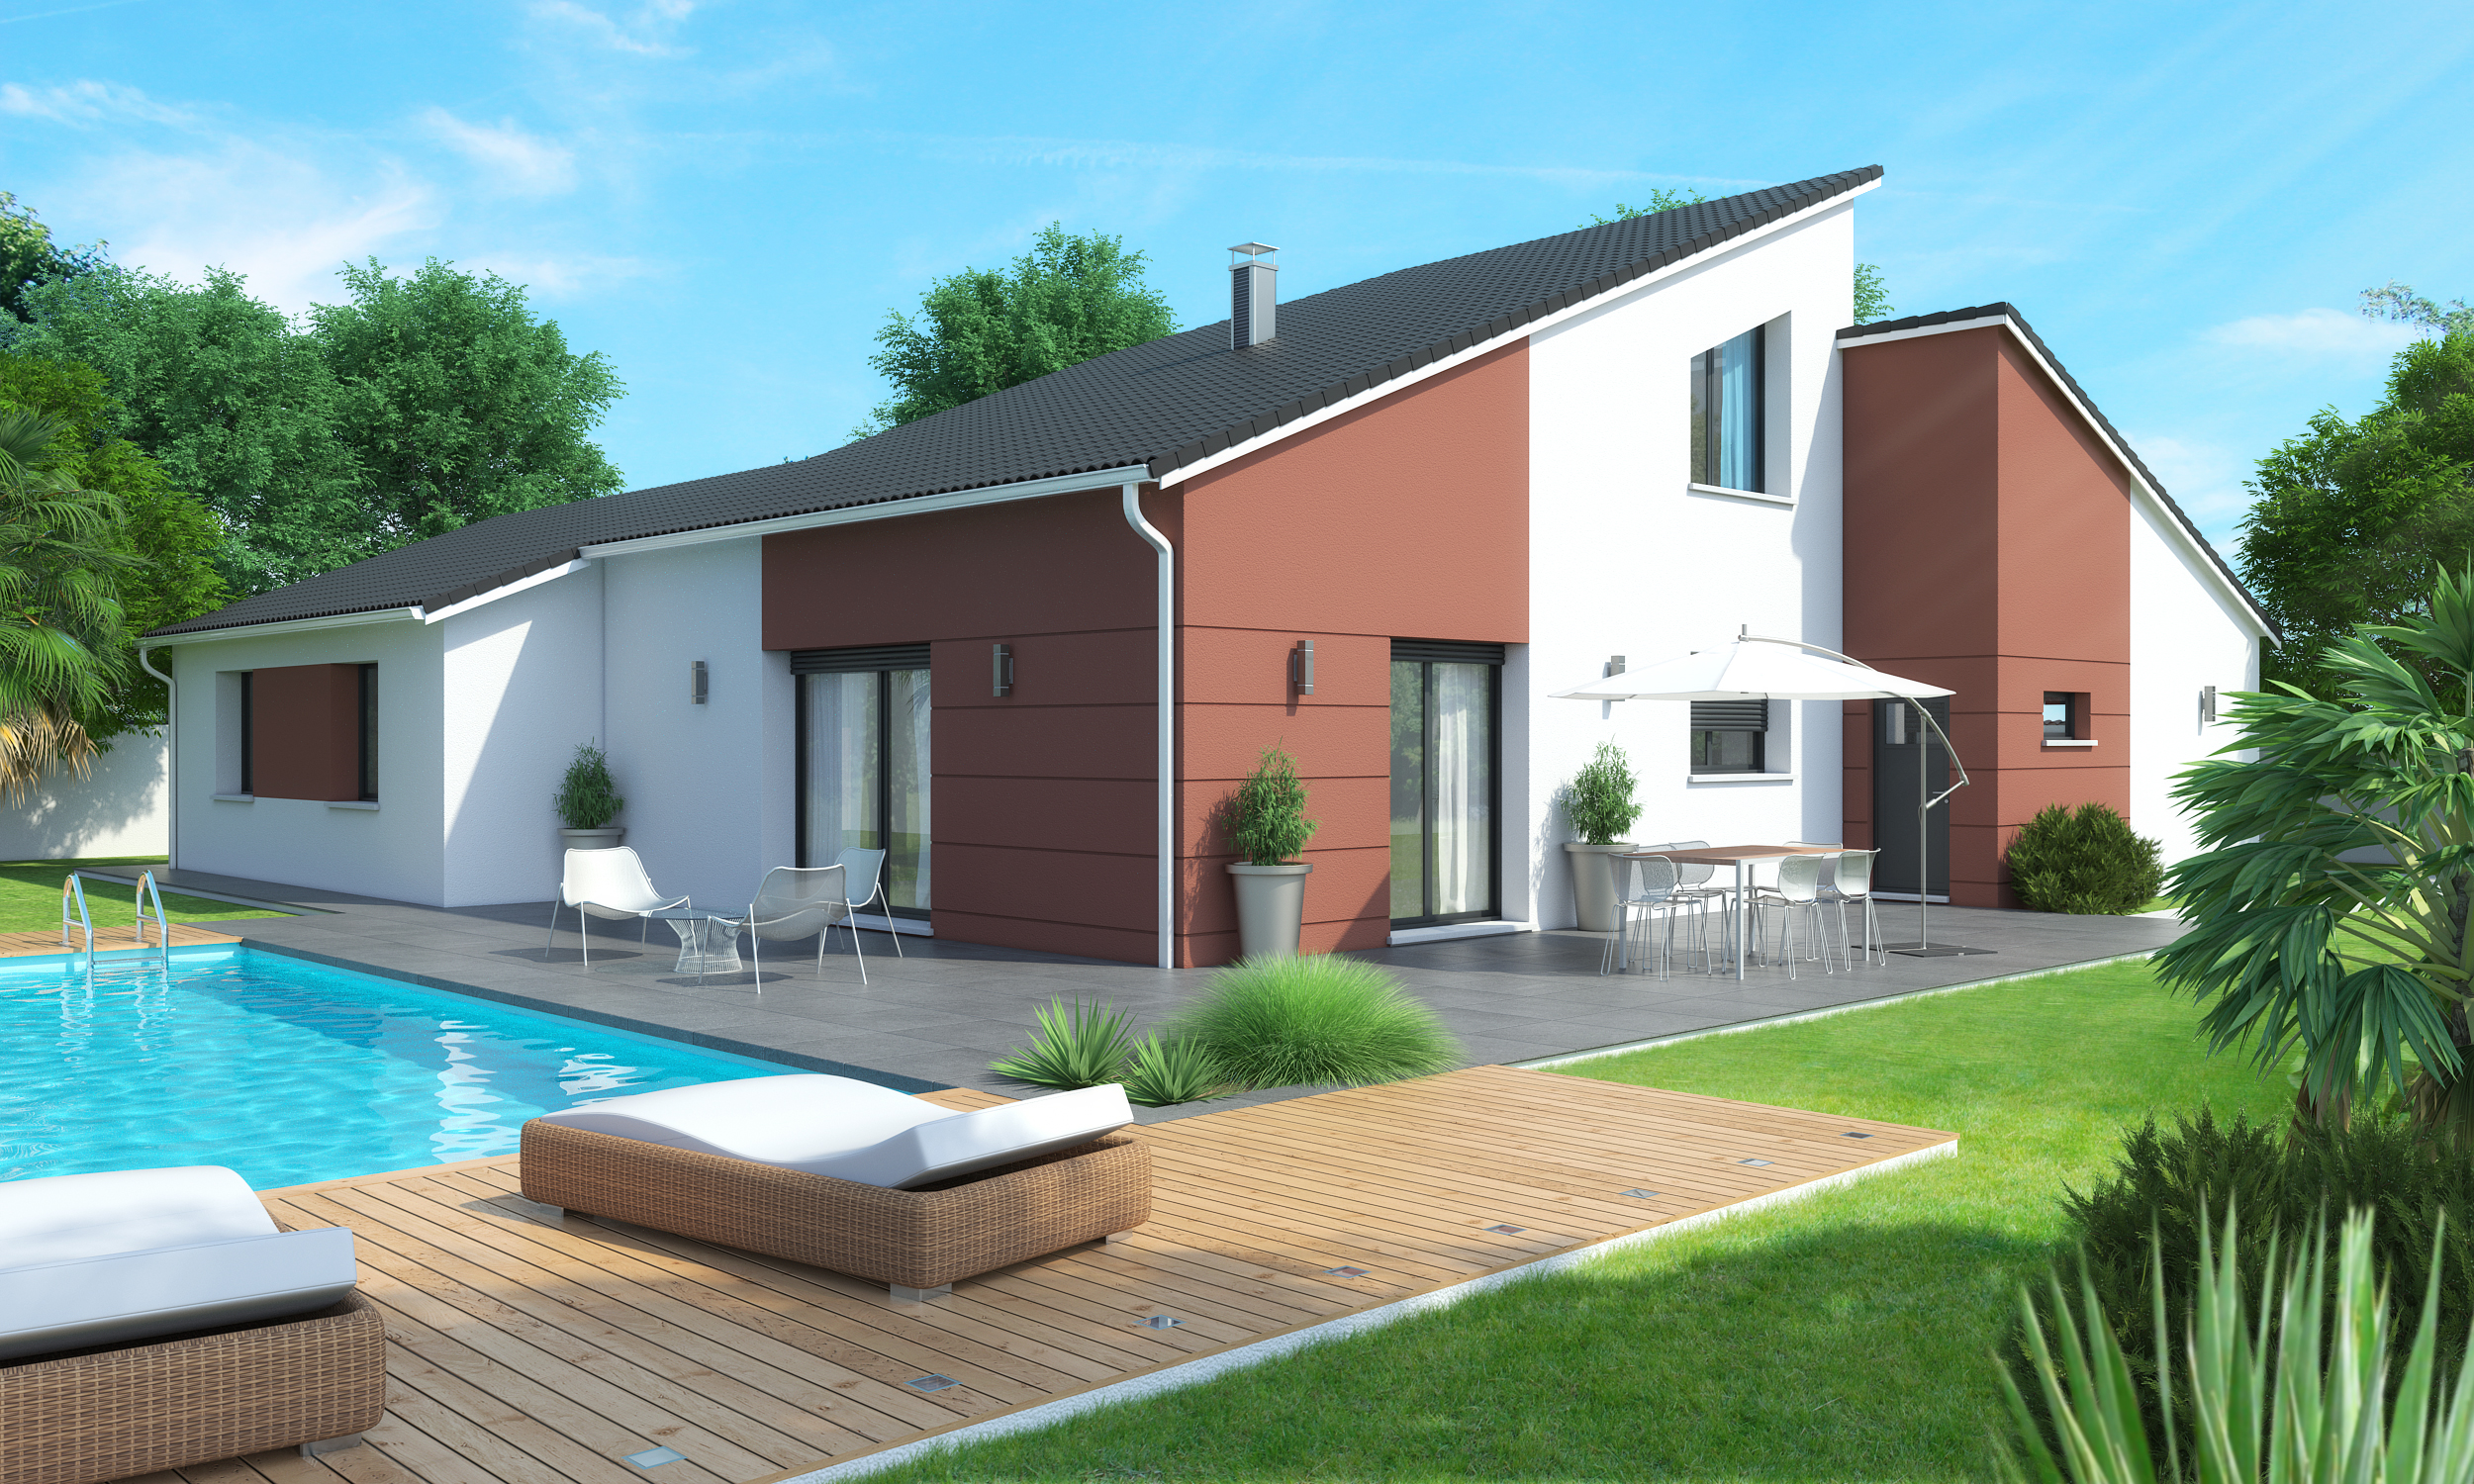 Belle maison contemporaine pr s issoire - Ma maison contemporaine ...